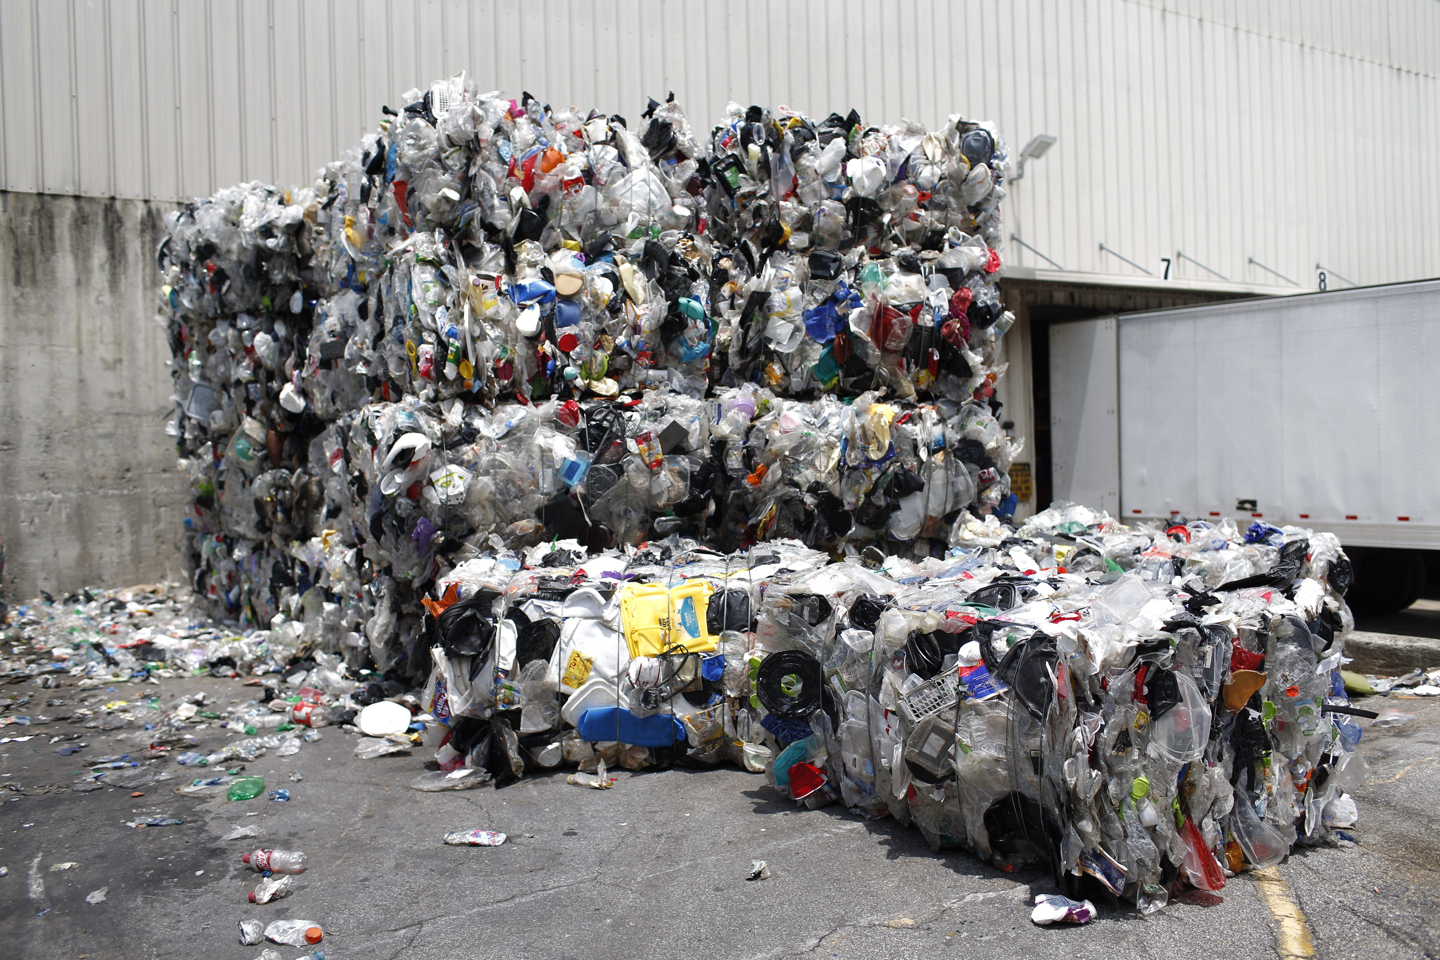 It's Time to Get Serious About Recycling, Via Market Forces